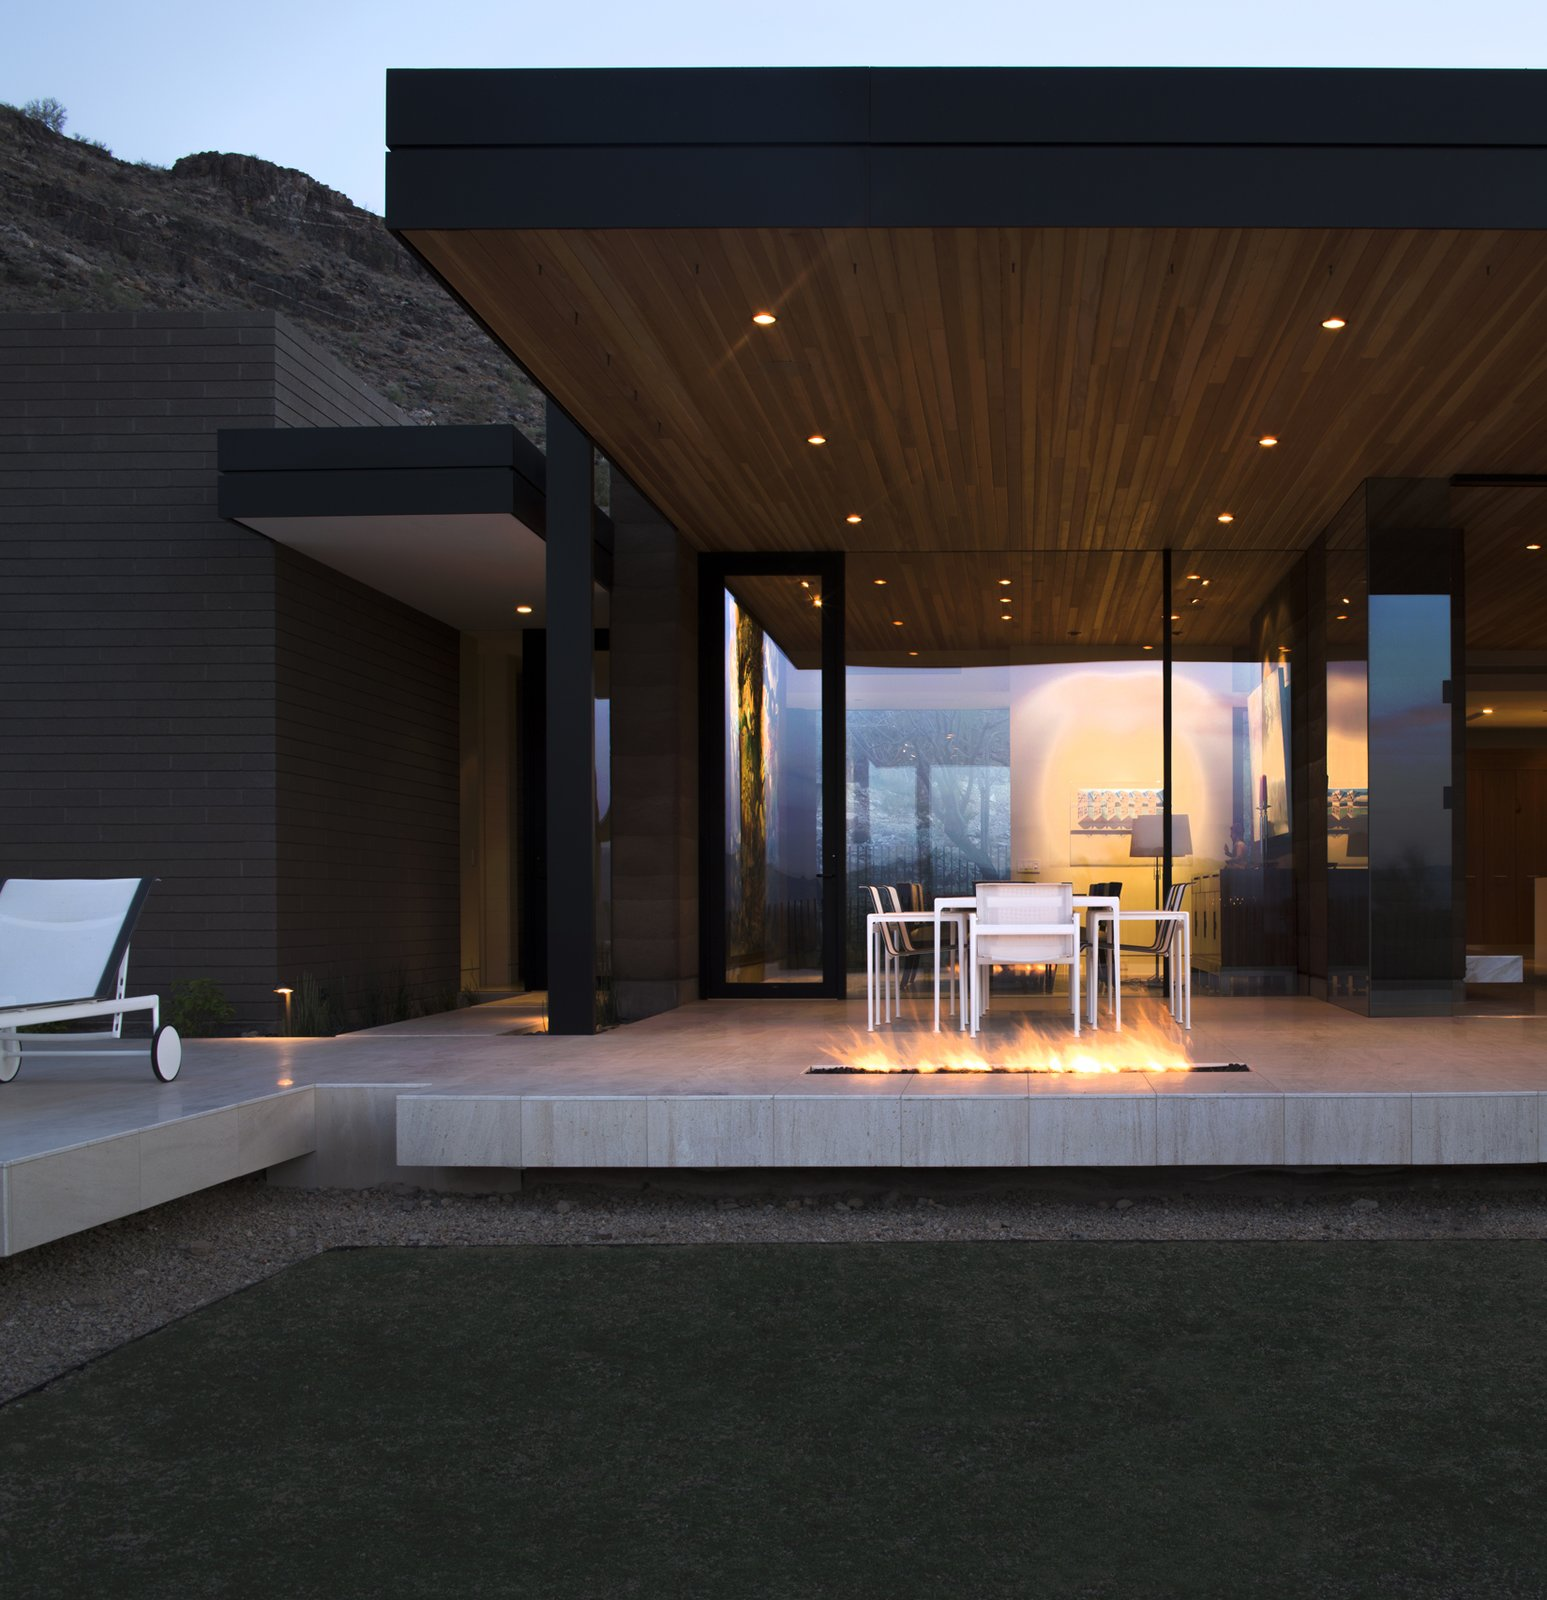 Outdoor, Hardscapes, Grass, Large Patio, Porch, Deck, Back Yard, and Stone Patio, Porch, Deck  Rammed Earth Modern